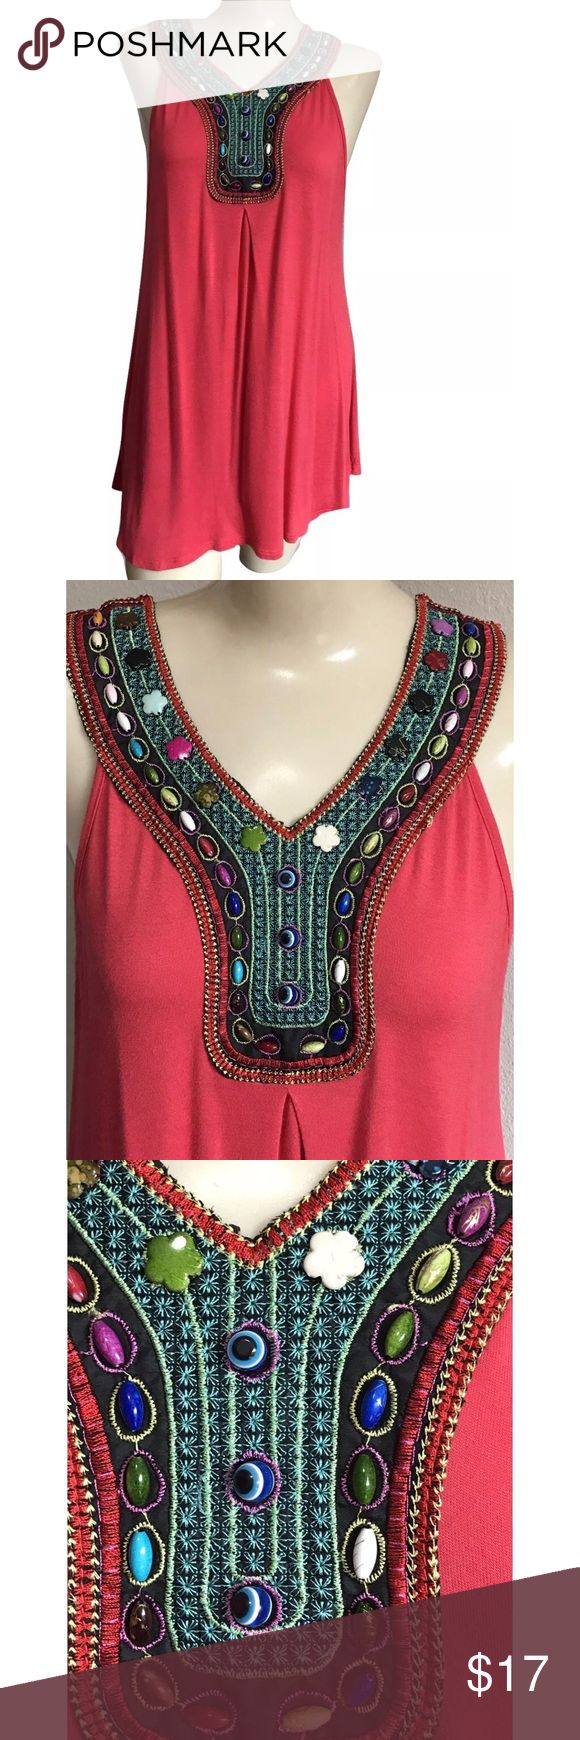 "Boho Coral Tunic Top Beaded Embroidery Size Large Tovia Sleeveless Tunic Top Size Large  Stunning Coral Jacket style Tunic Top with a beard and Embroidered V neckline. Peekaboo back with a tie that ties around the neck Skirt has. Little Flare to it for extra bounce!  90% Rayon, 10%Spandex M  Bust 17-19"" from underarm to underarm  Total Length apprx 29"" from shoulder to hem  Great pre-owned condition Tovia Tops Tunics"